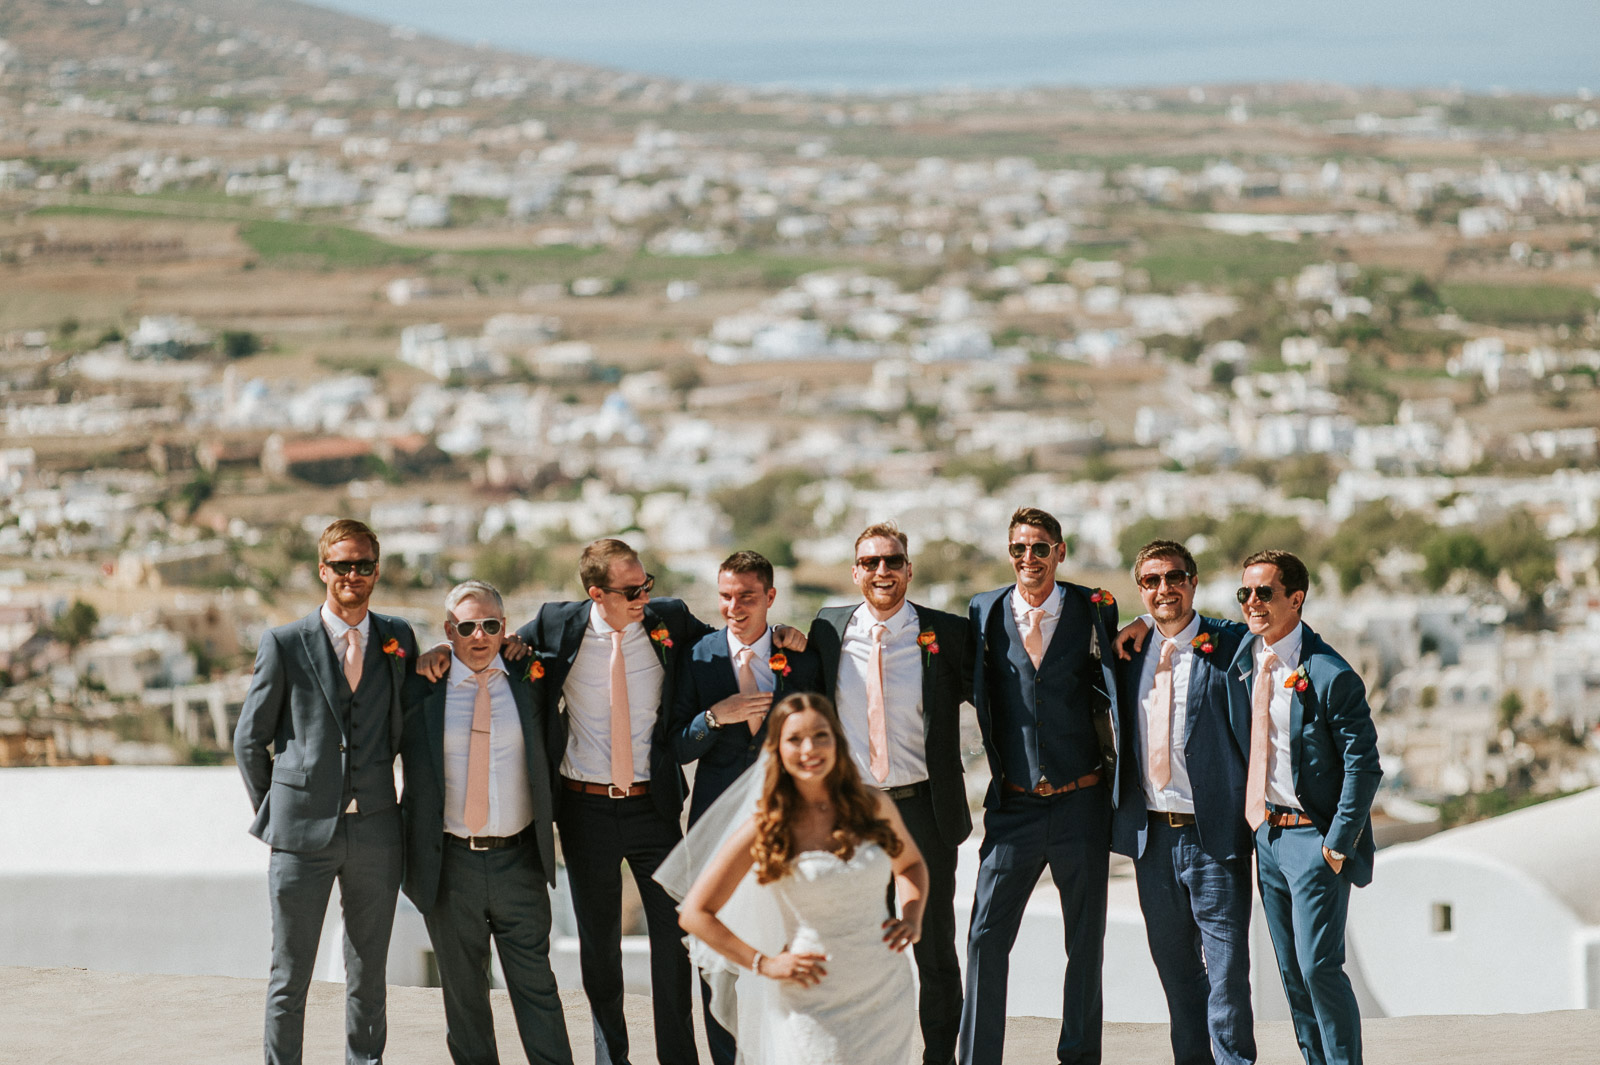 Santorini-Wedding-Photographer-Greece-Destination-Weddings-Mait-Juriado-M&J-Studios-043